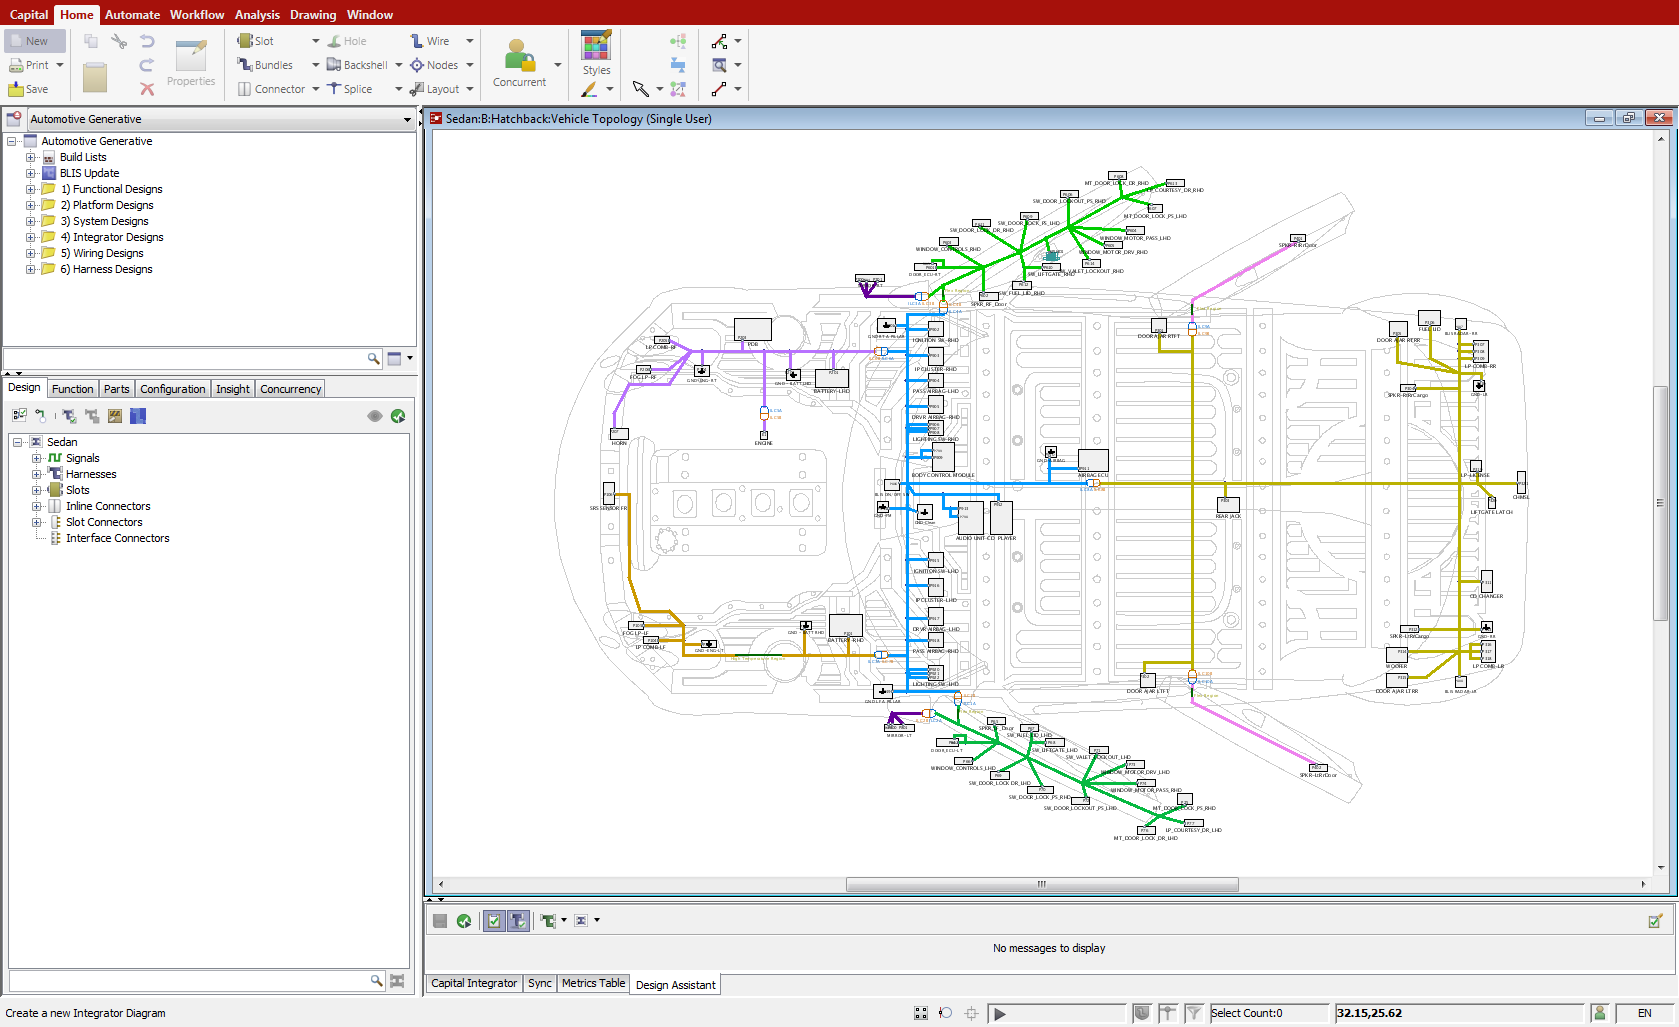 CapitalIntegrator E4720331?q=80&w=1600&fit=max capital integrator electrical design automation mentor graphics wiring harness design courses in pune at eliteediting.co